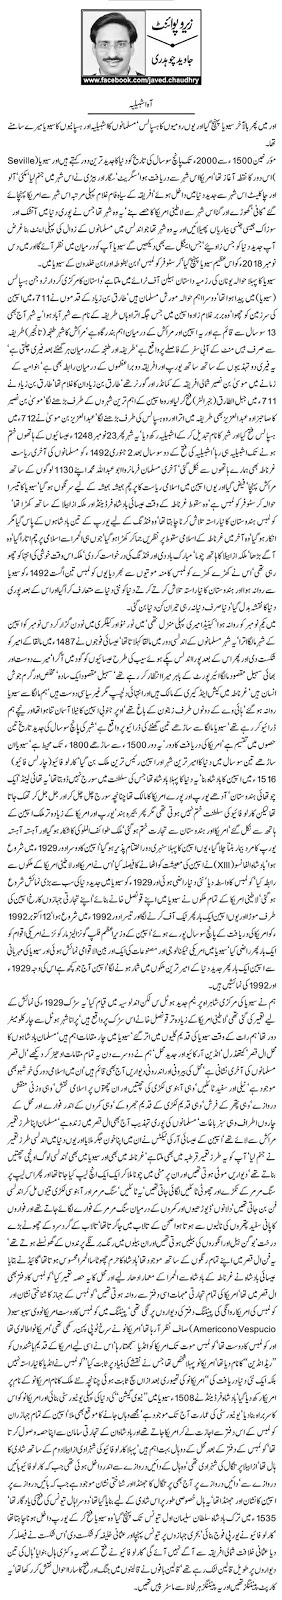 Aah Ashbeliya Column By Javed Chaudhry in Urdu (20 November 2018)